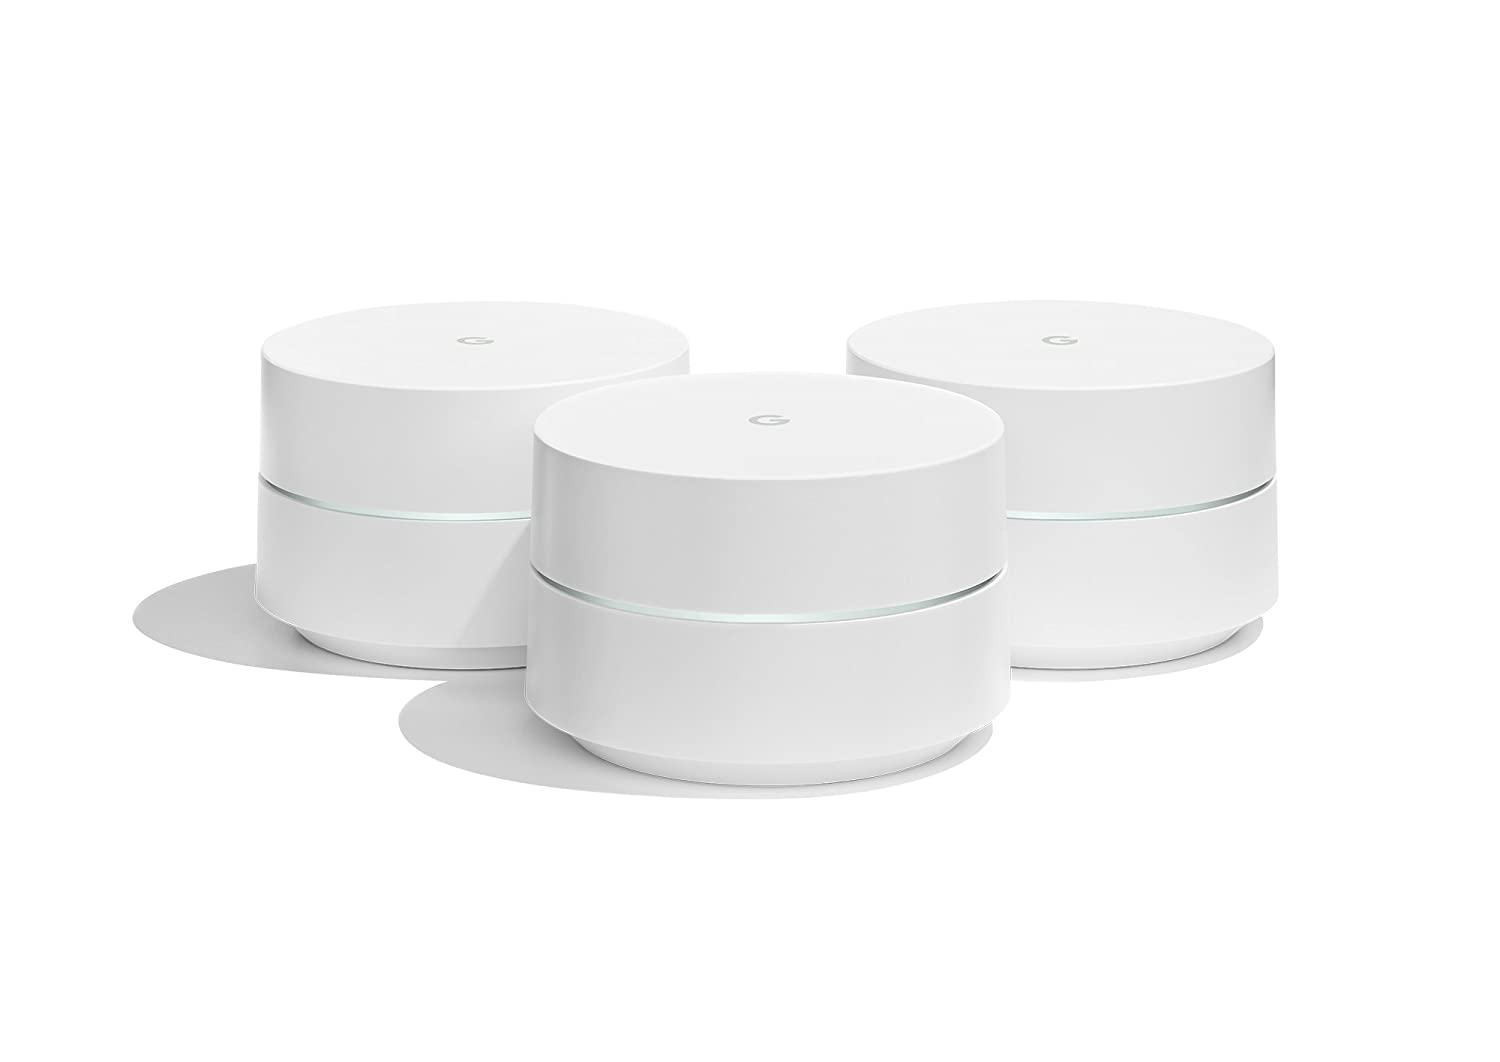 Google WiFi System Black Friday Deal 2019